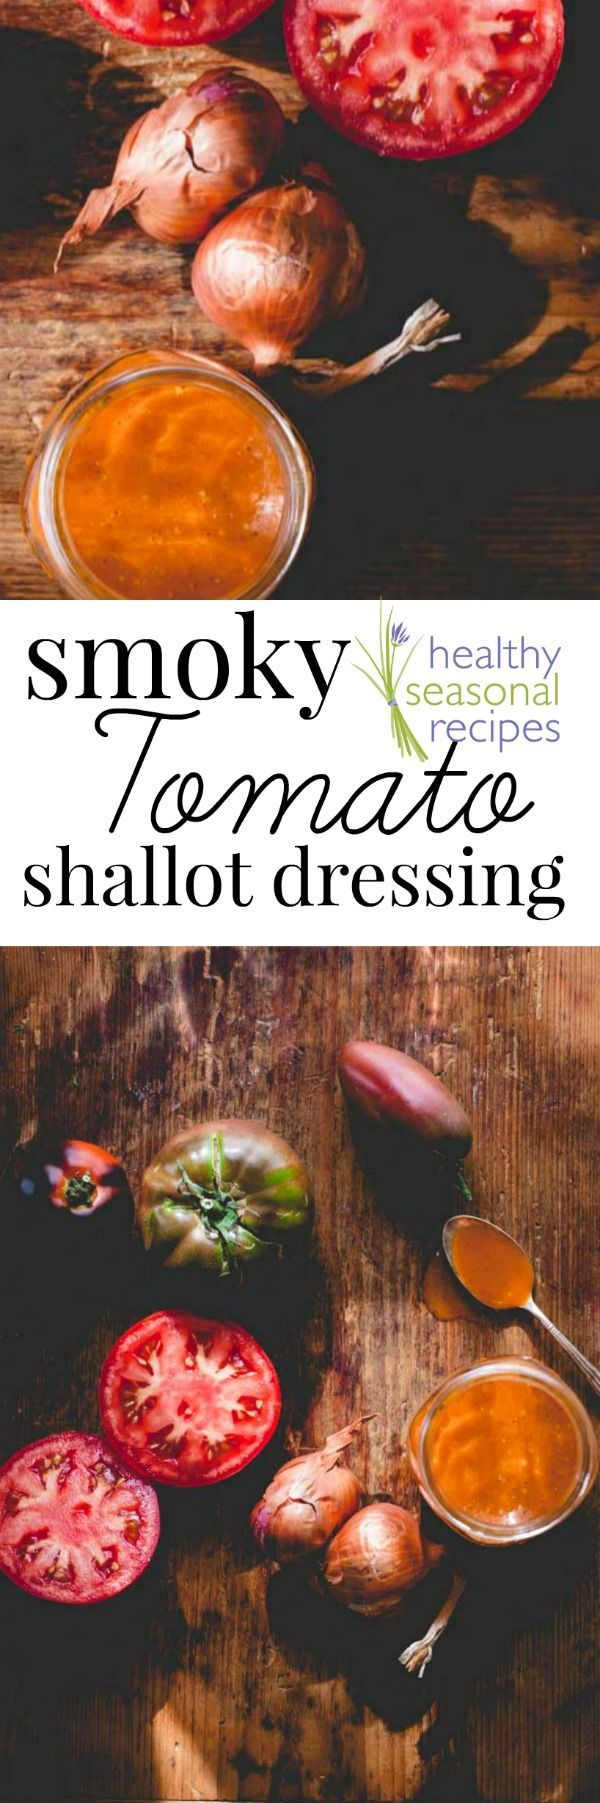 I could drink this salad dressing it is that great: amazing smoky tomato shallot salad dressing with fresh tomatoes and sherry vinegar. Healthy Seasonal Recipes by Katie Webster